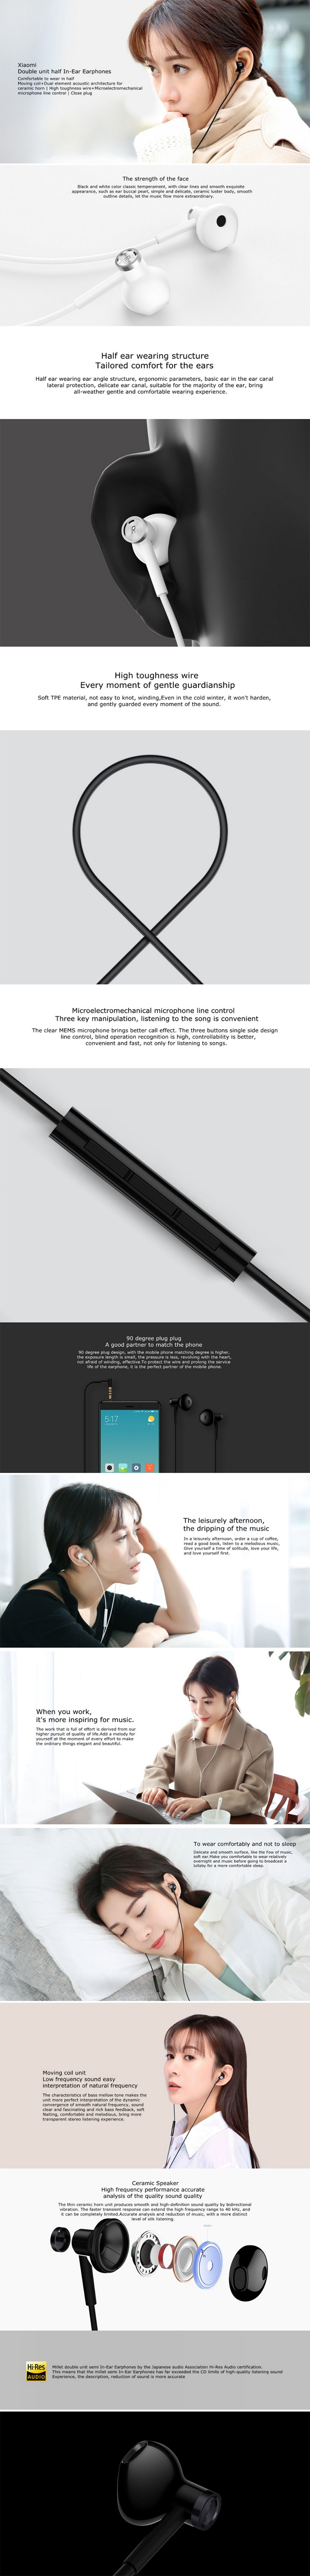 6a7318cbd0b Specifications of 2018 New Original Xiaomi Mi Dual Driver 3.5mm Wired  Earphone with Microphone - Black